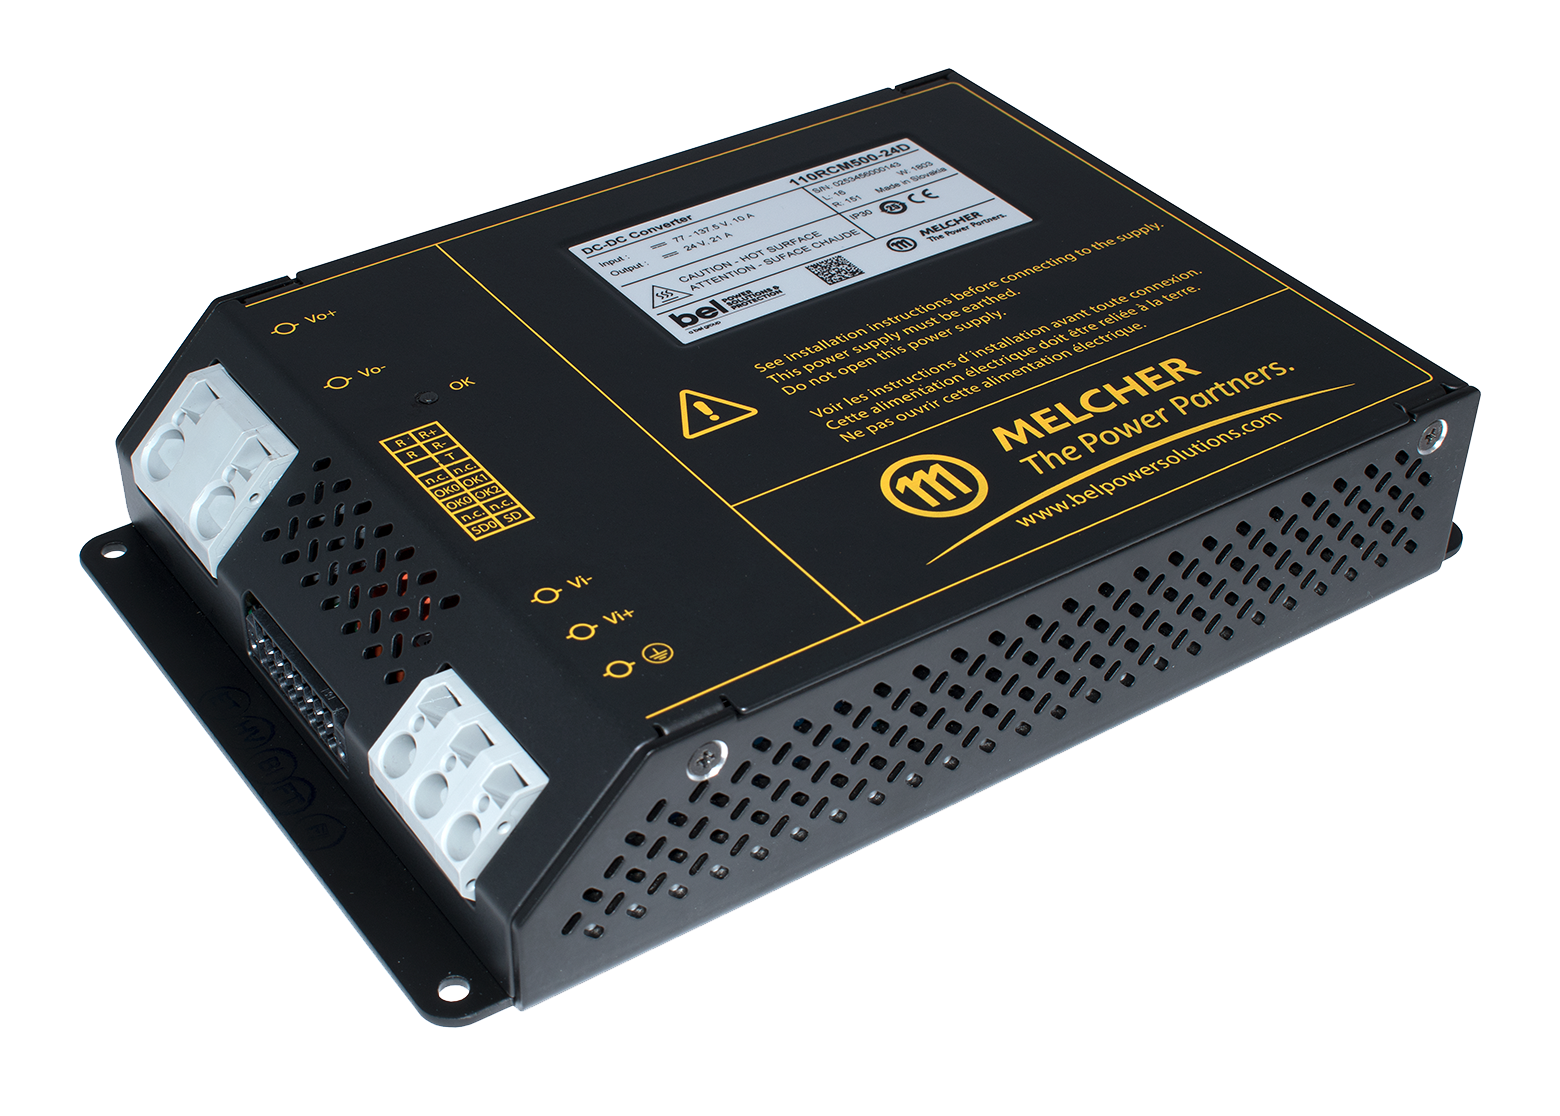 Chassis-Mount 500 W and 1000 W DC-DC Converters Designed for Railway Applications